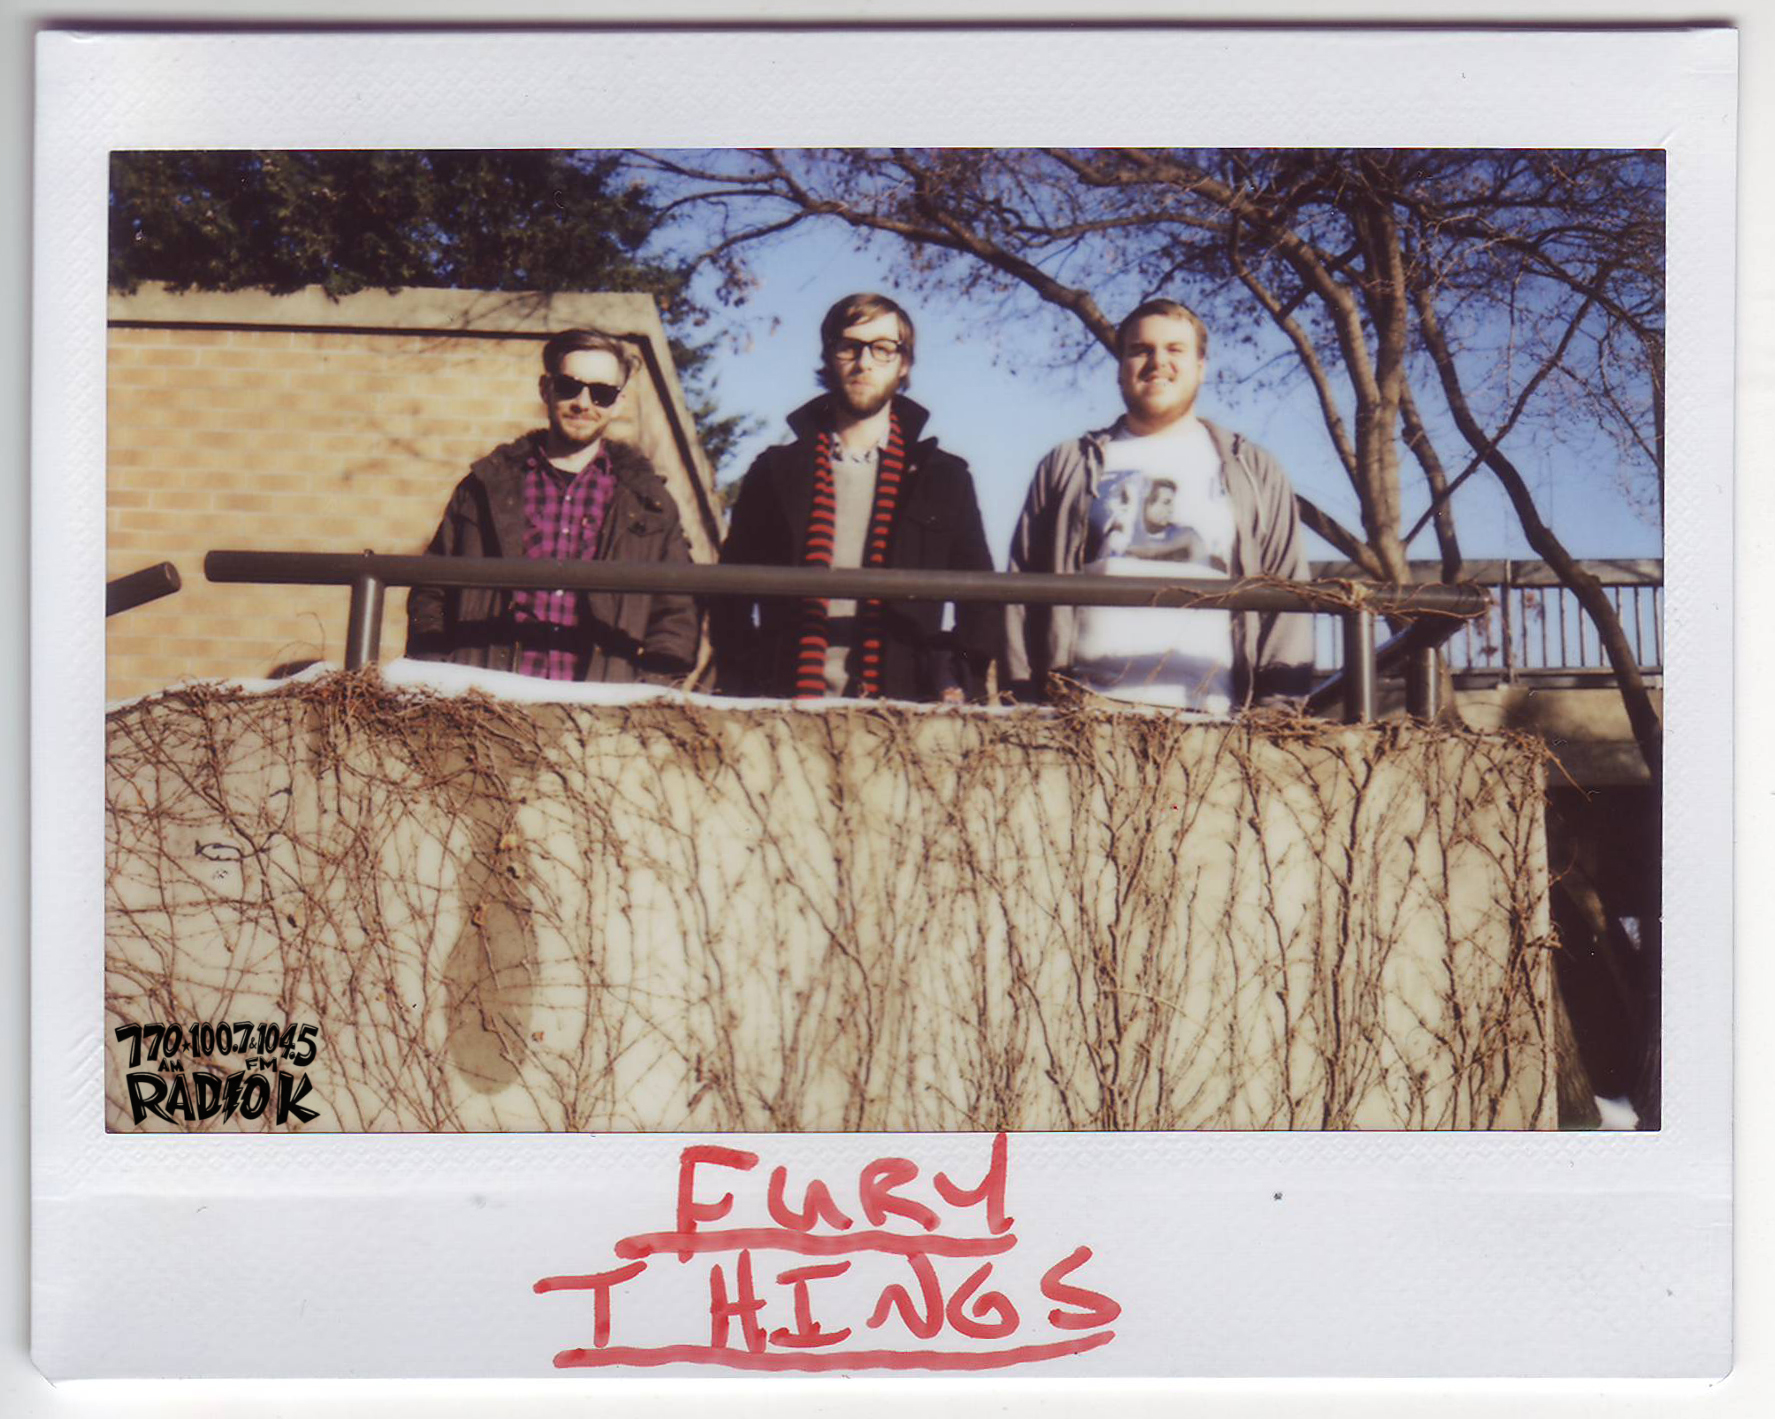 Fury Things Radio K In-studio Polaroid